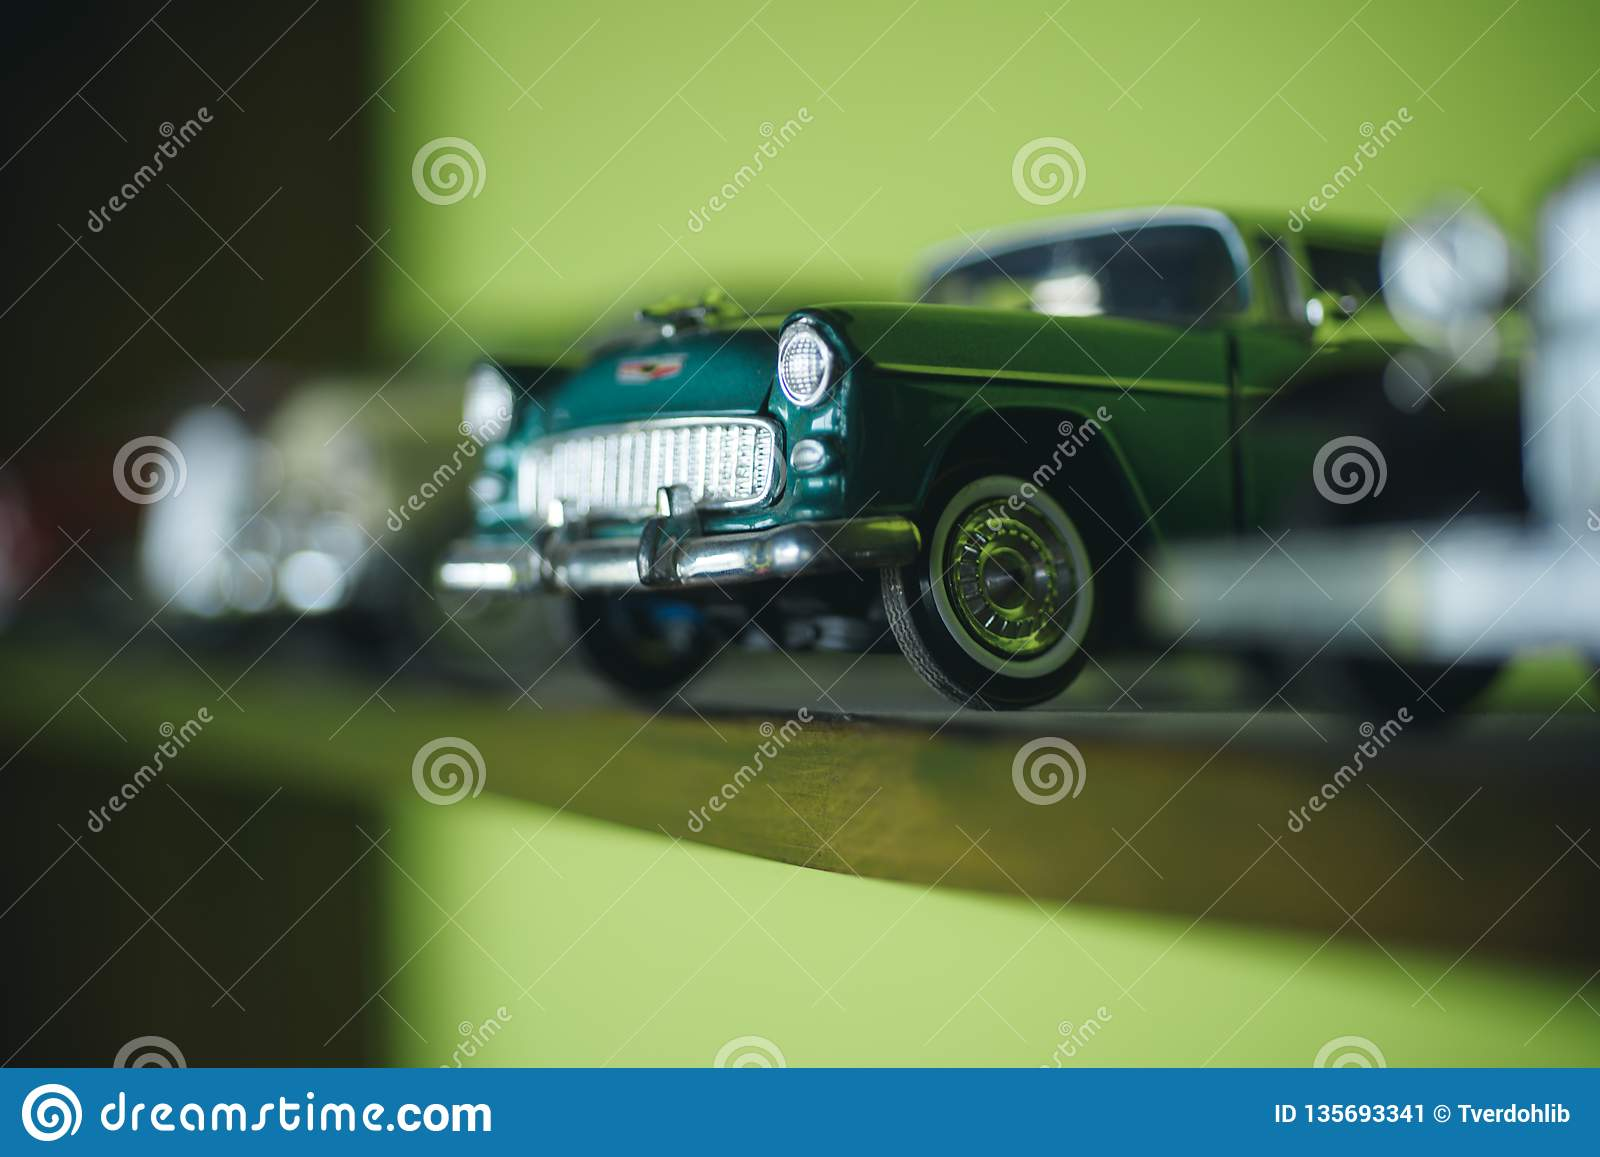 A Close Attention To The Details  Retro Styled Cars  Toy Cars With